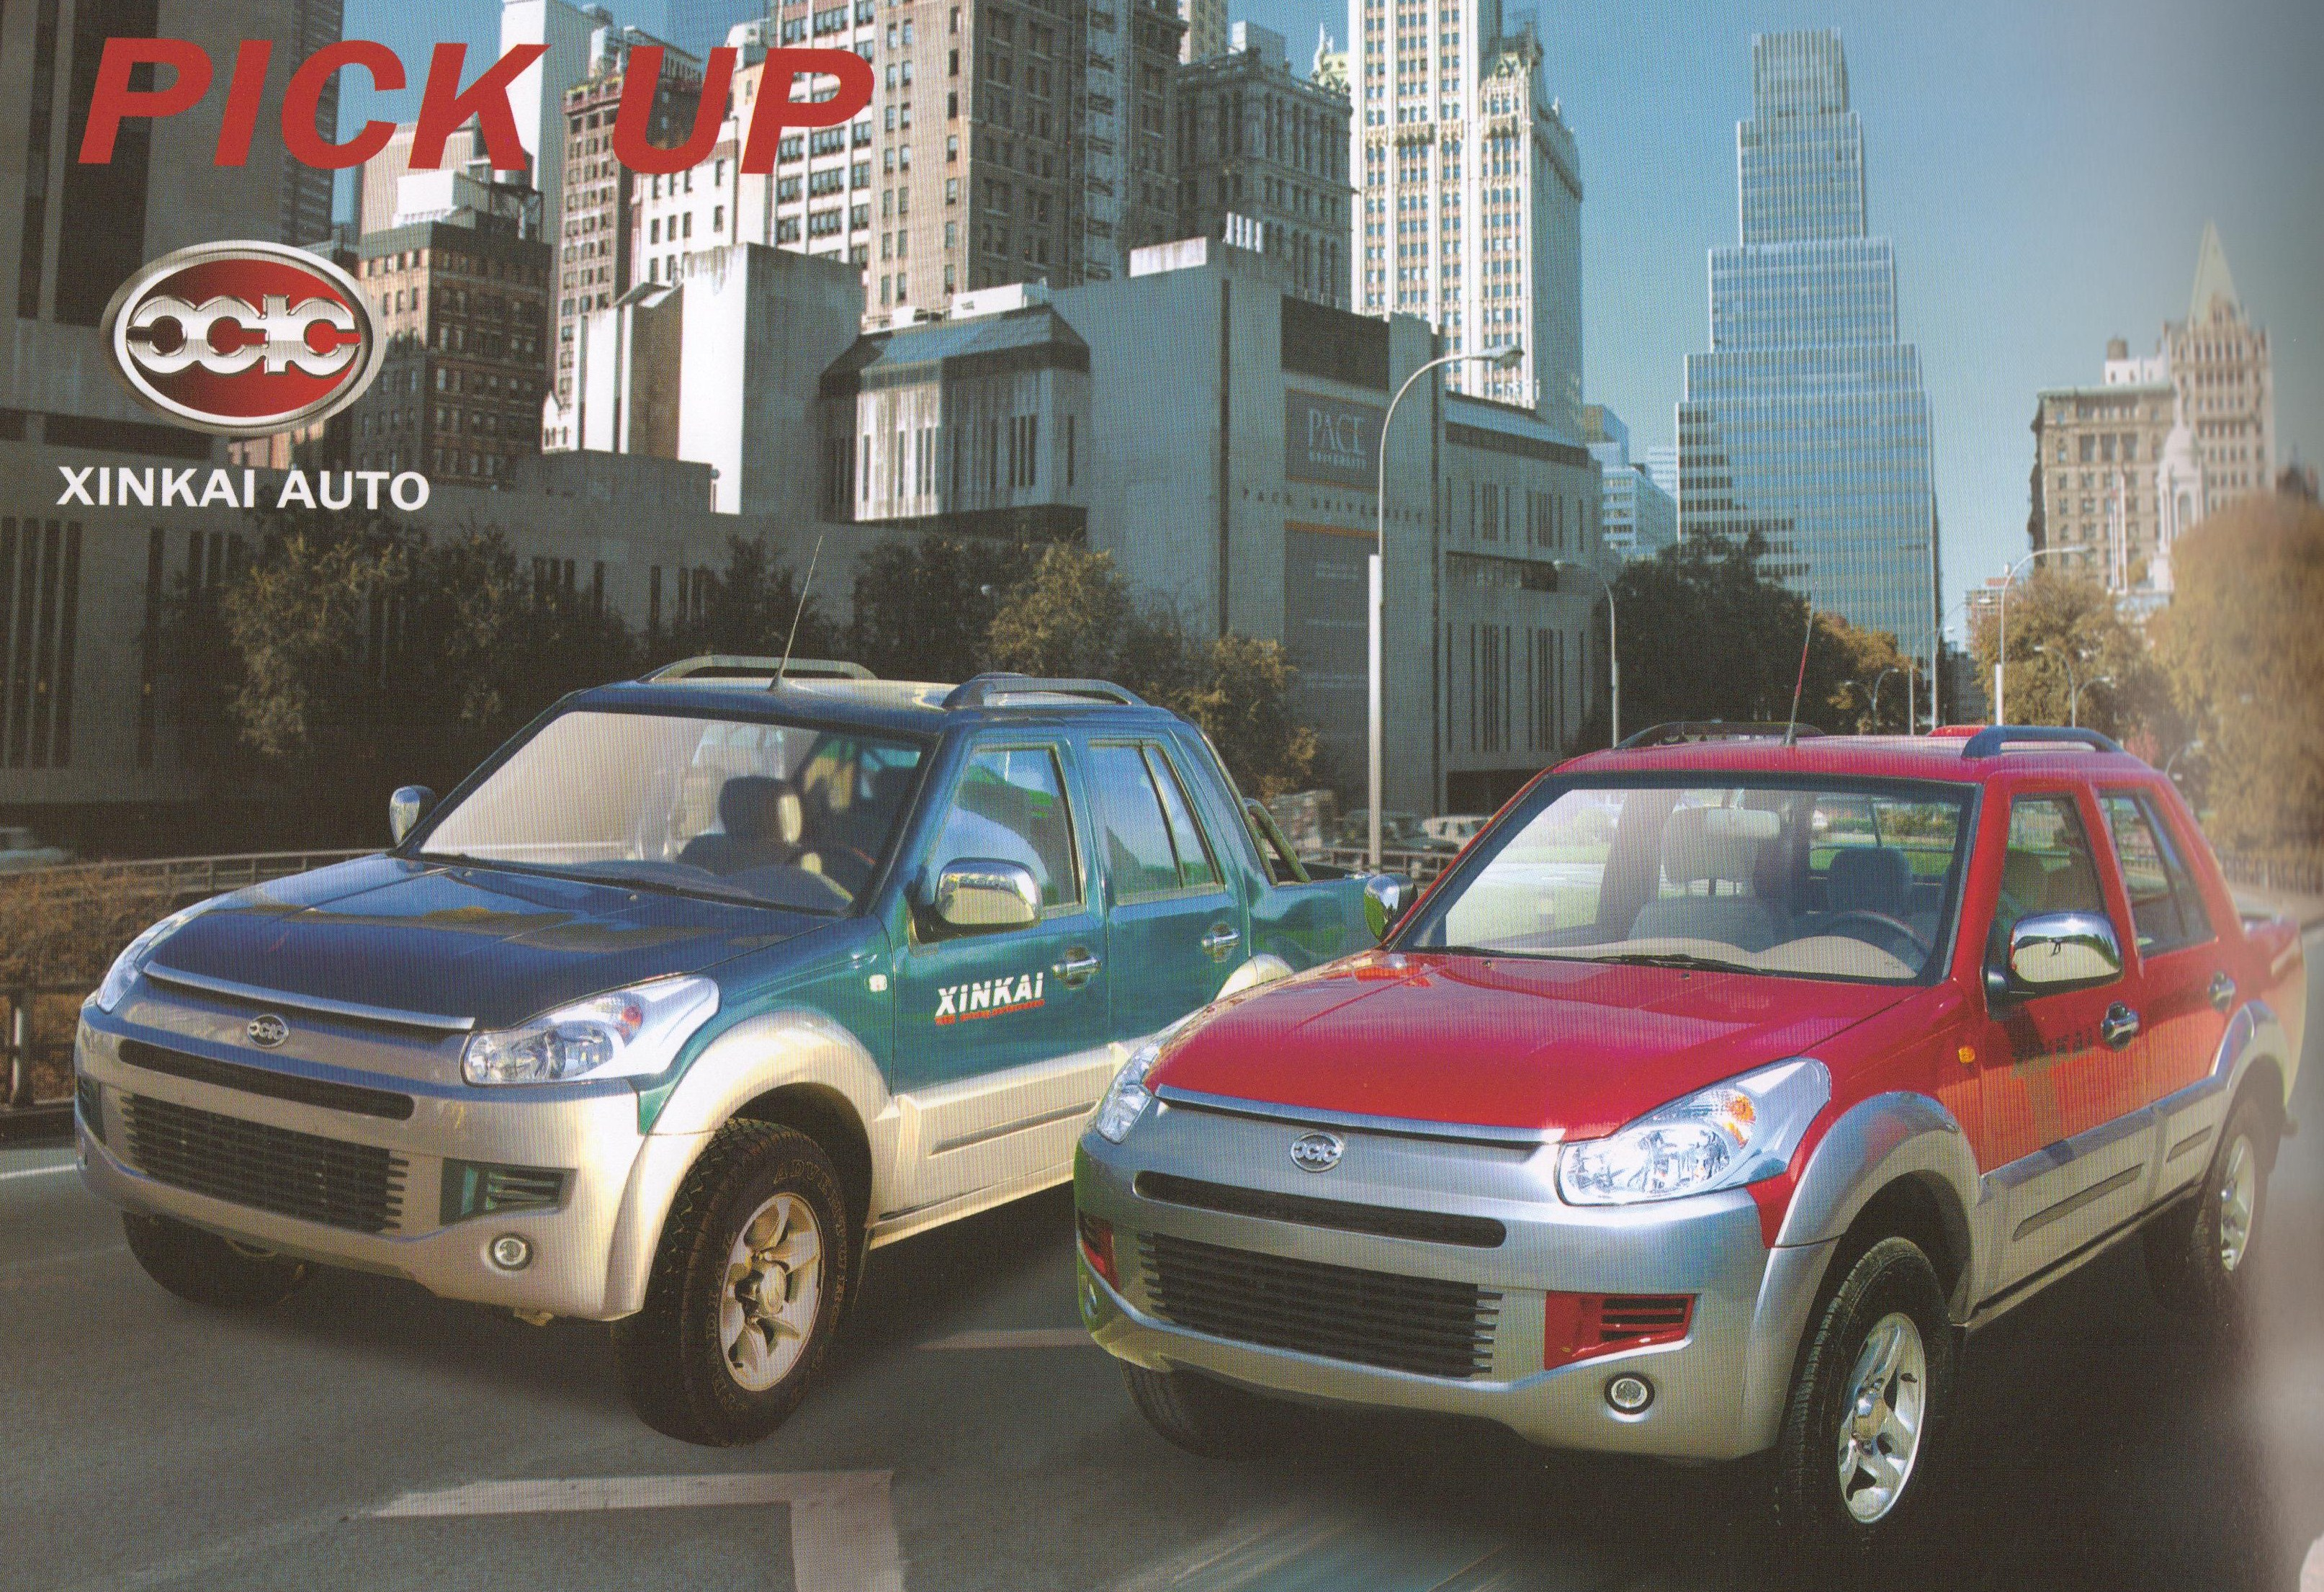 Xinkai Auto pick-up brochure